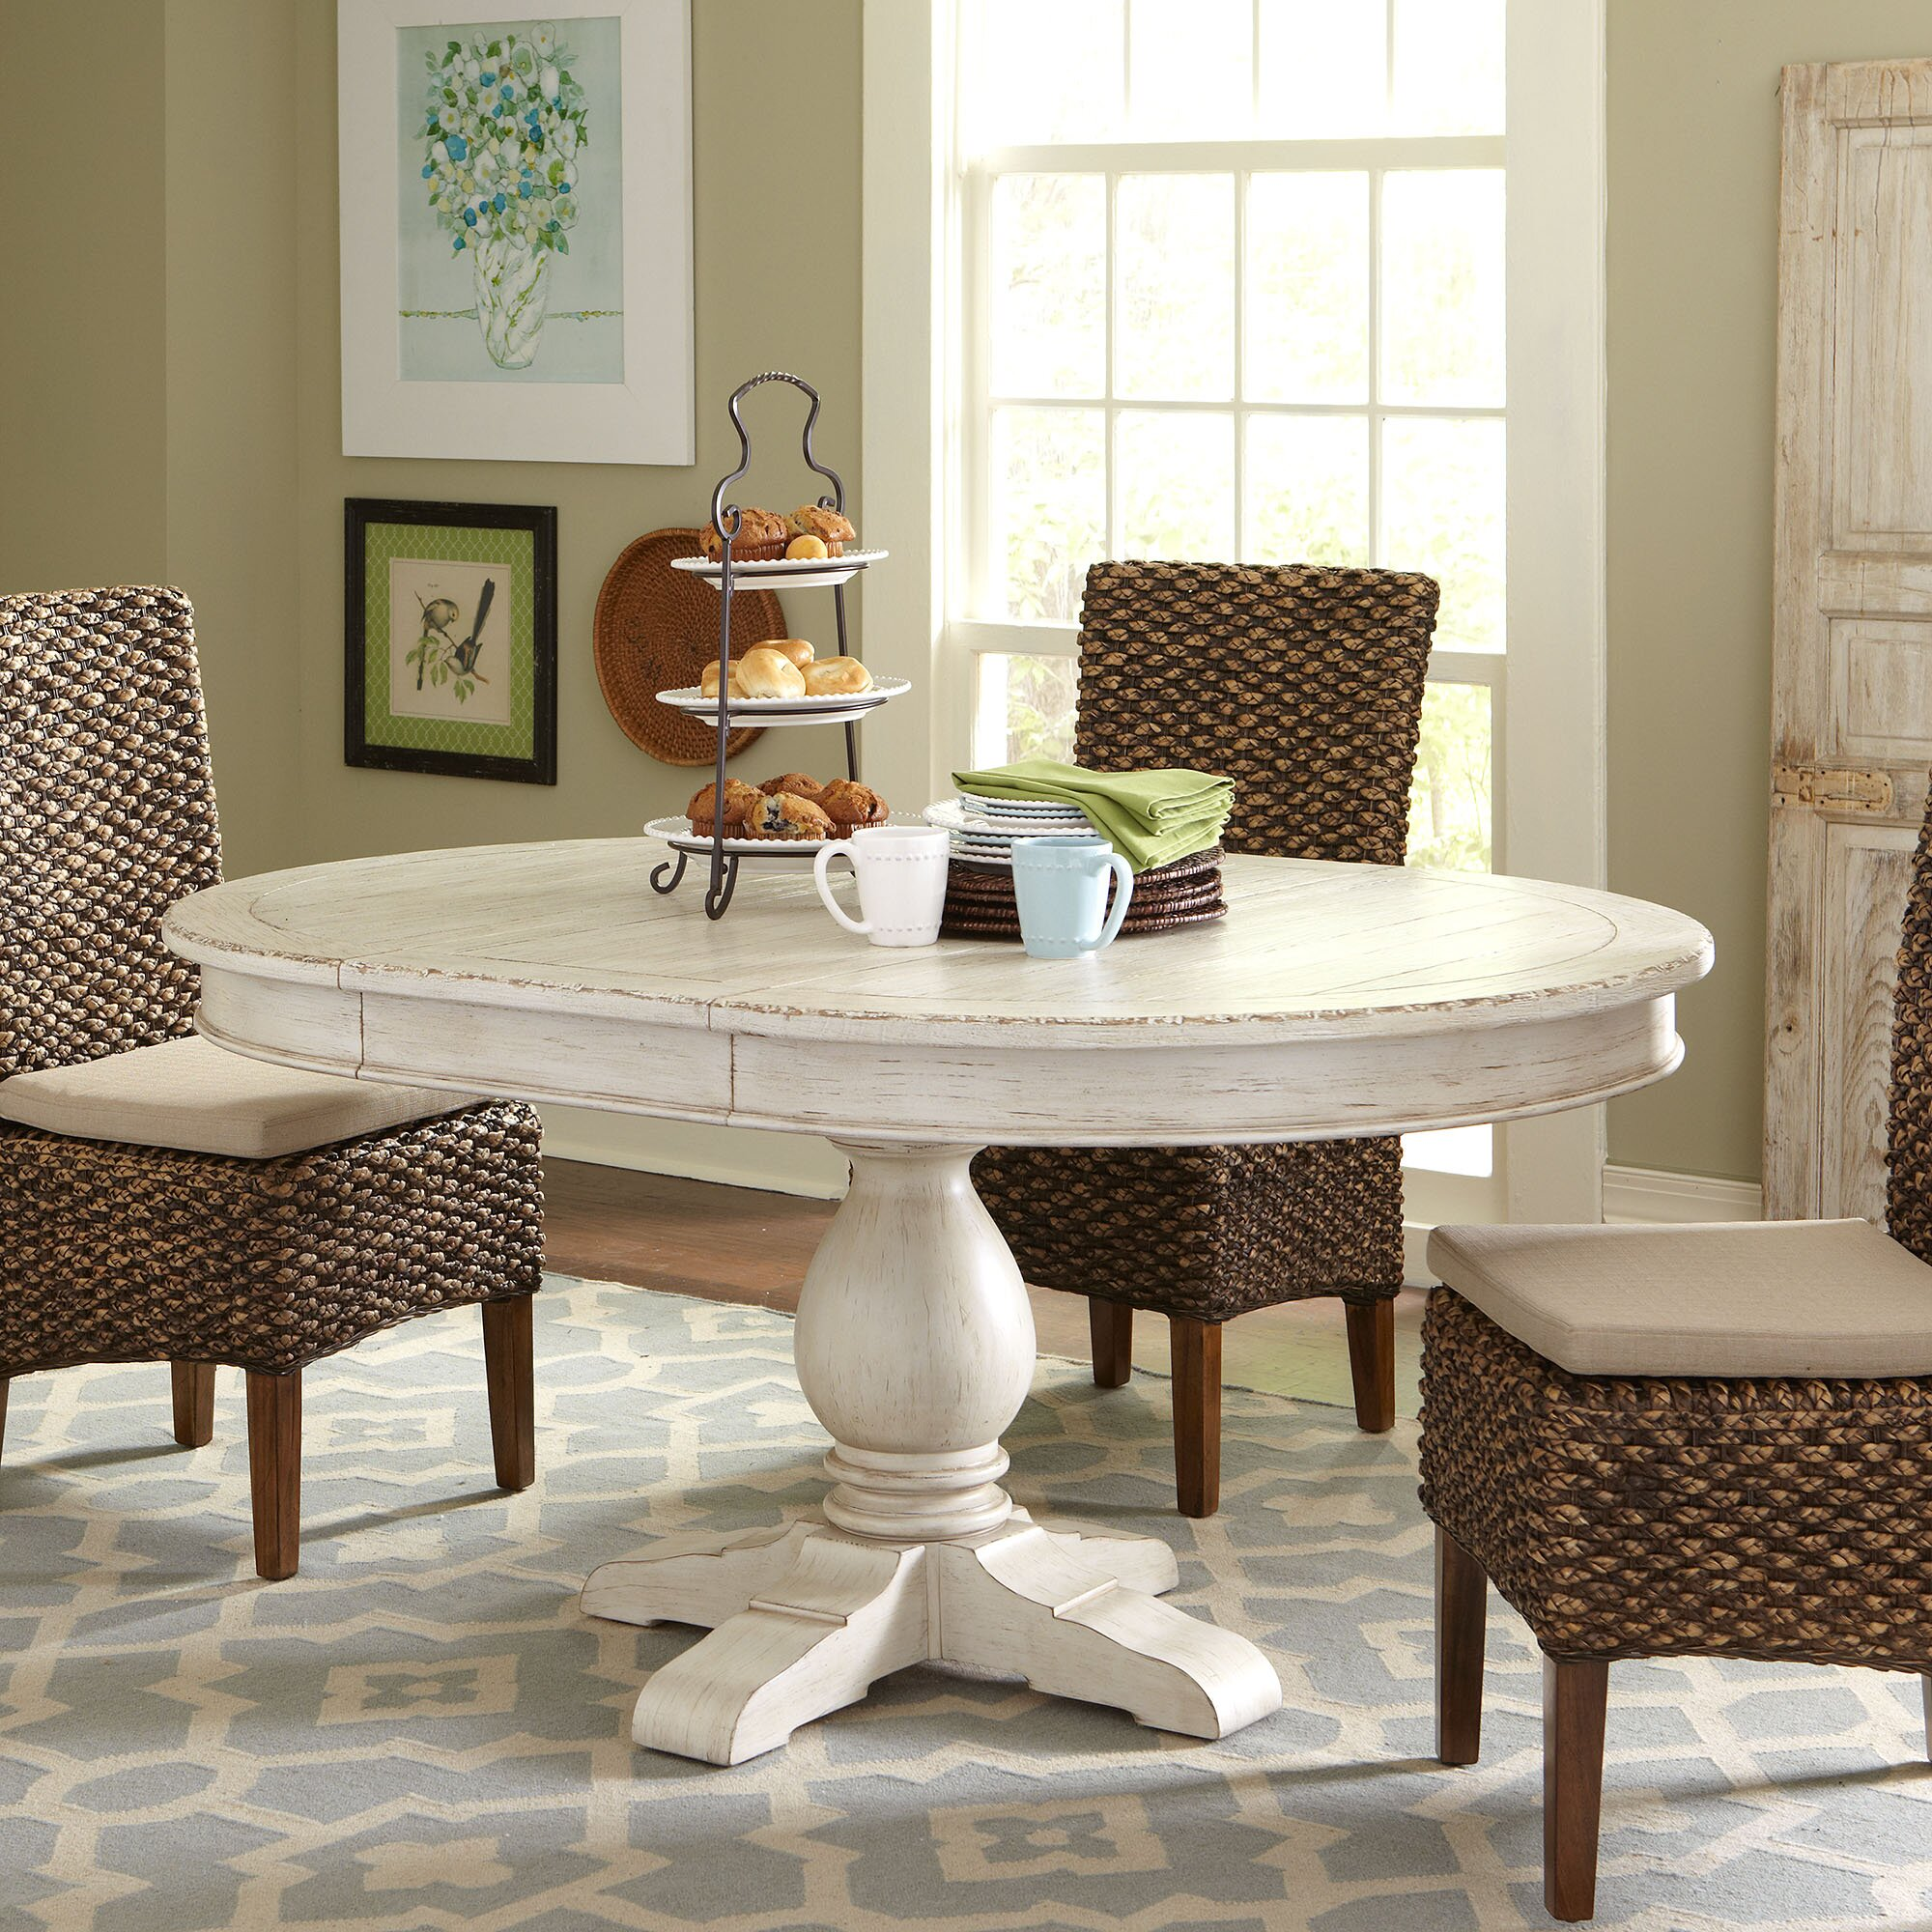 birch lane clearbrook round extending dining table reviews birch lane. Black Bedroom Furniture Sets. Home Design Ideas